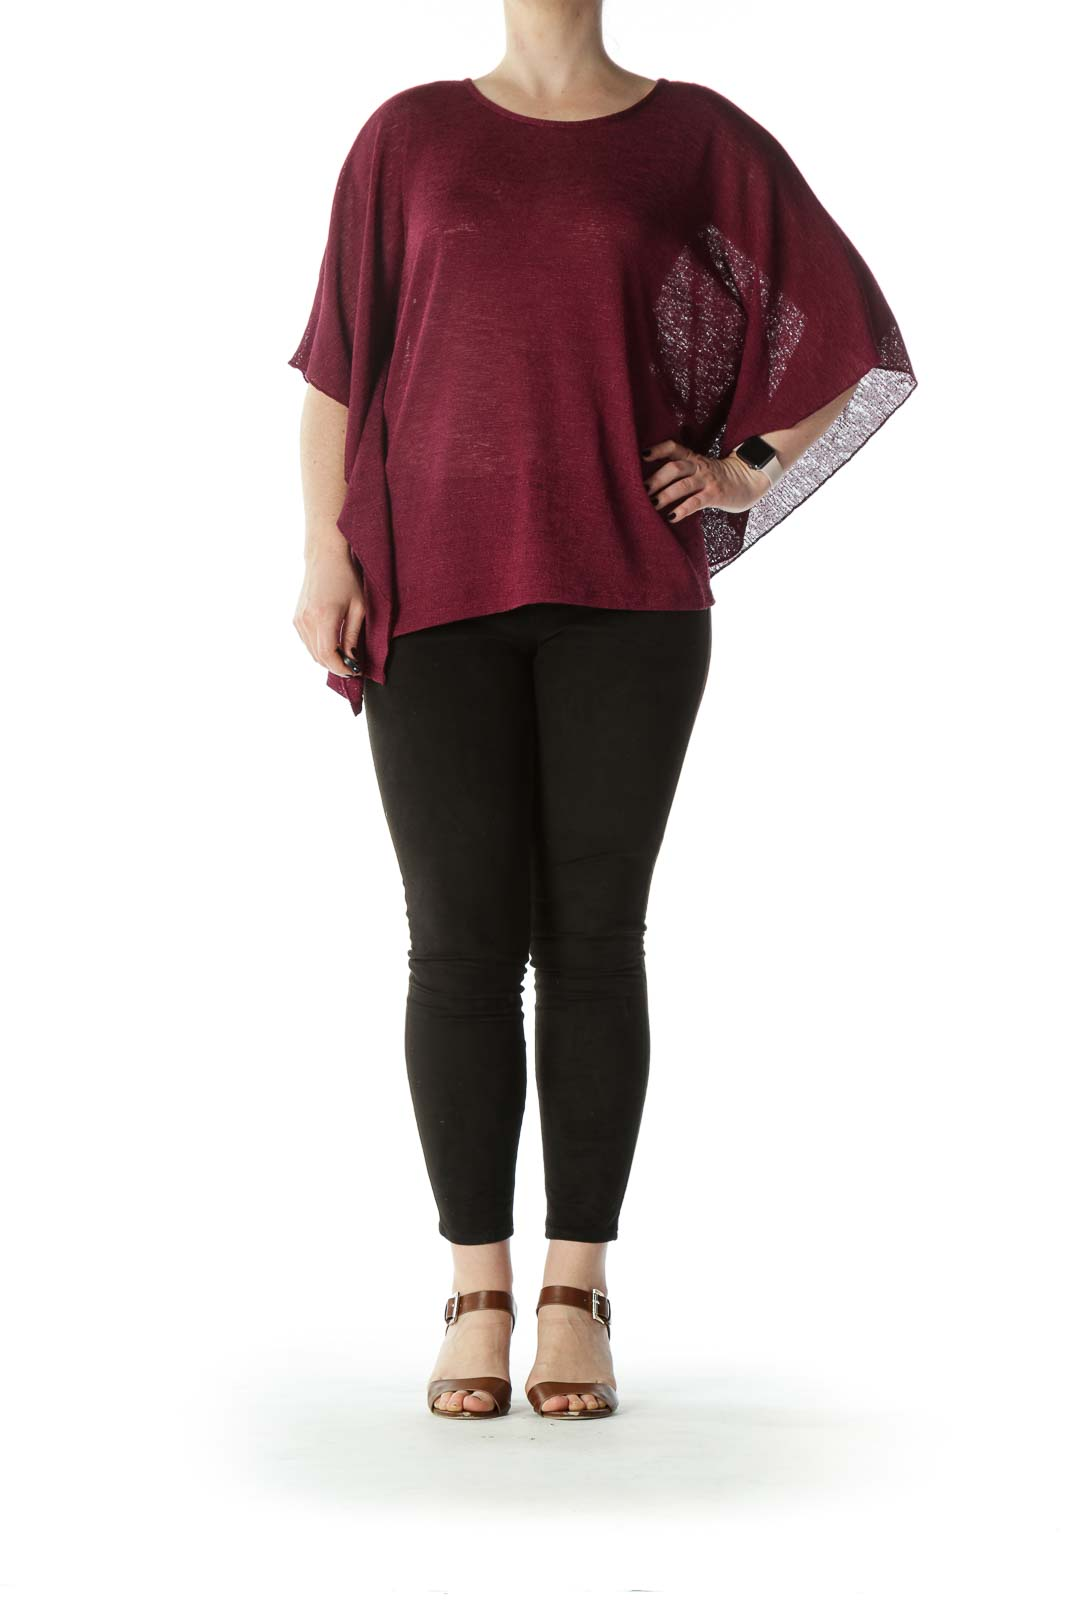 Burgundy Flared-Sleeves See-Through-Knit Top